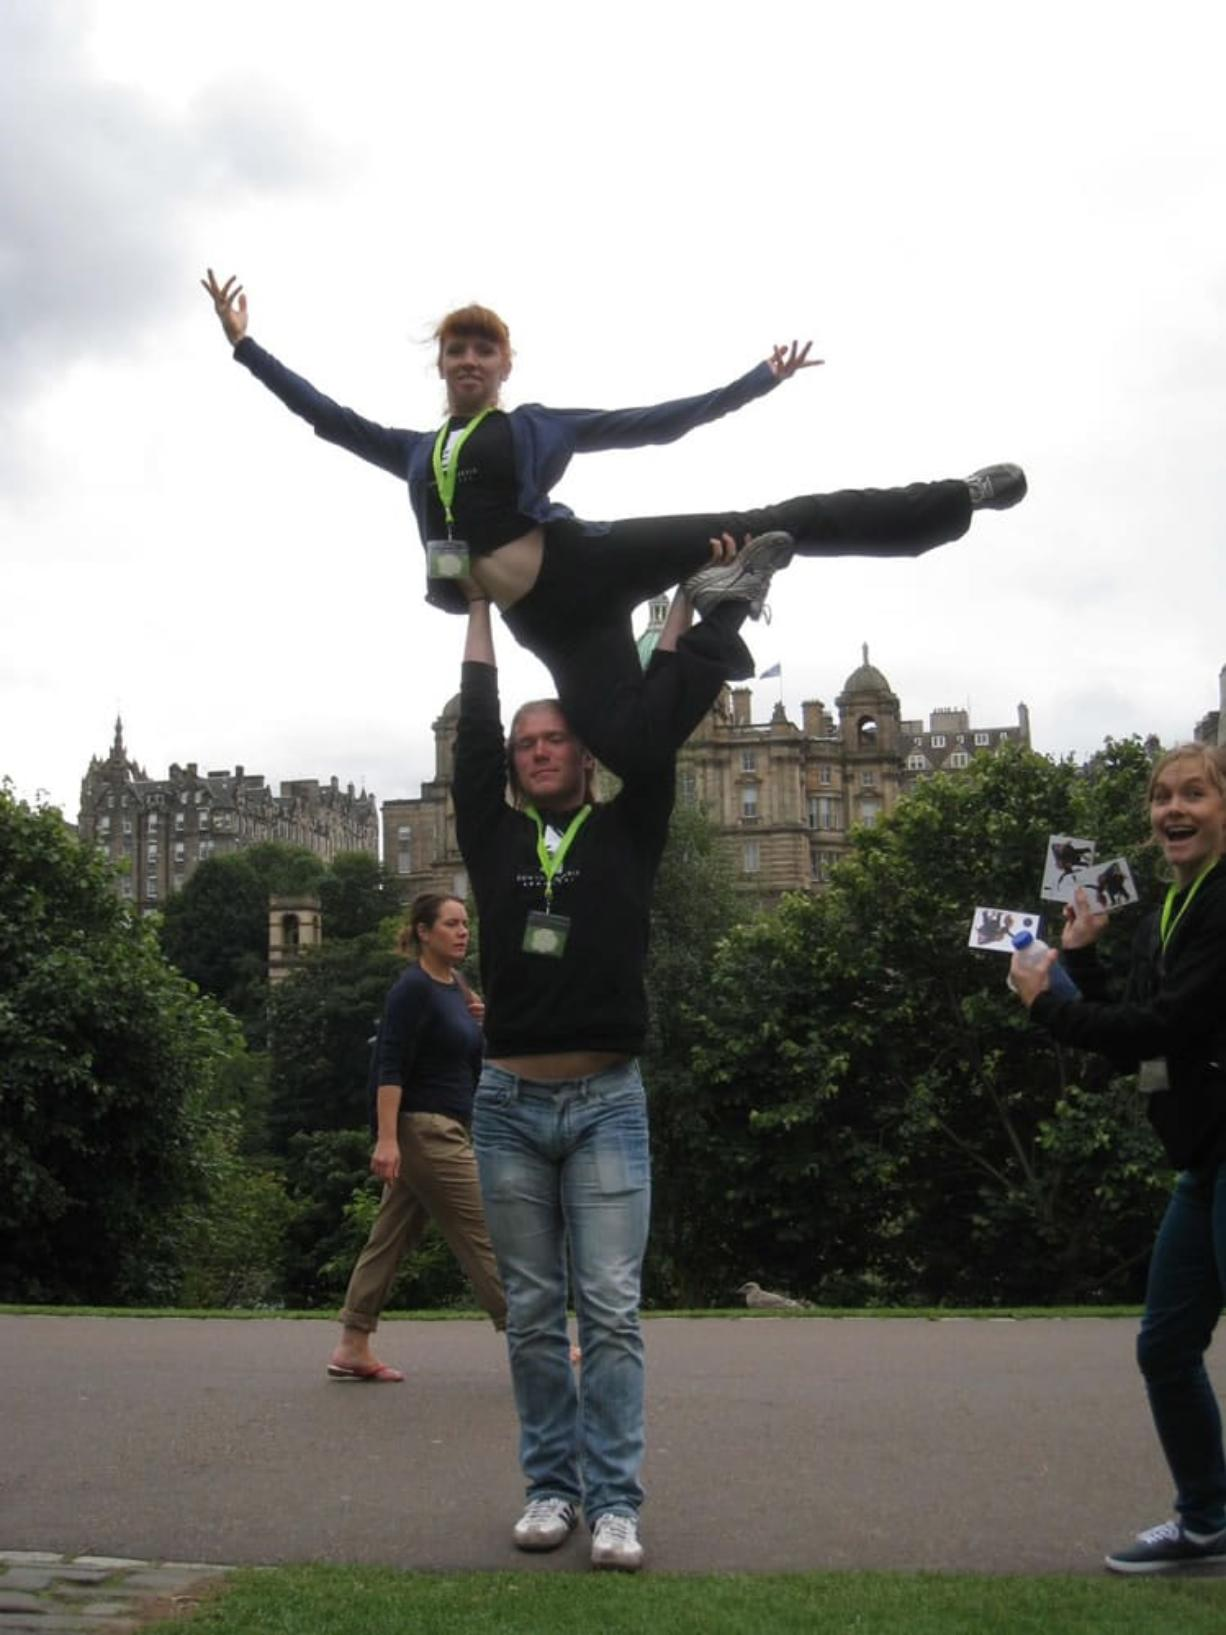 Shumway: Vancouver School of Arts and Academics graduate and professional dancer Eowyn Emerald Barrett hams it up in Edinburgh, Scotland, with Joshy Murry, a member of her troupe.